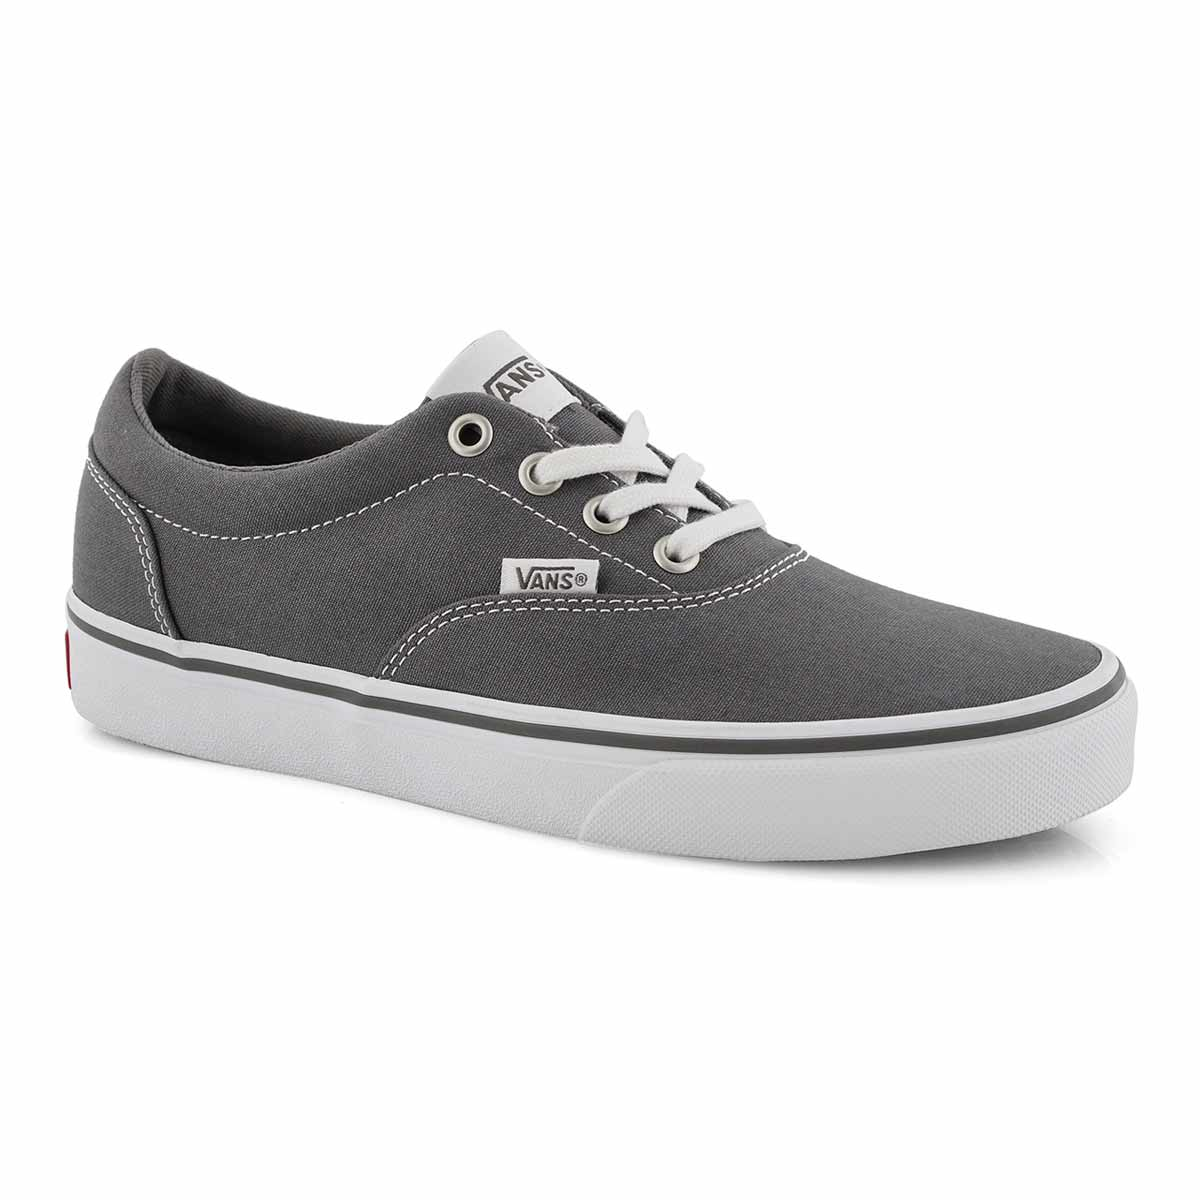 Women's DOHENY pewter/white lace up sneakers